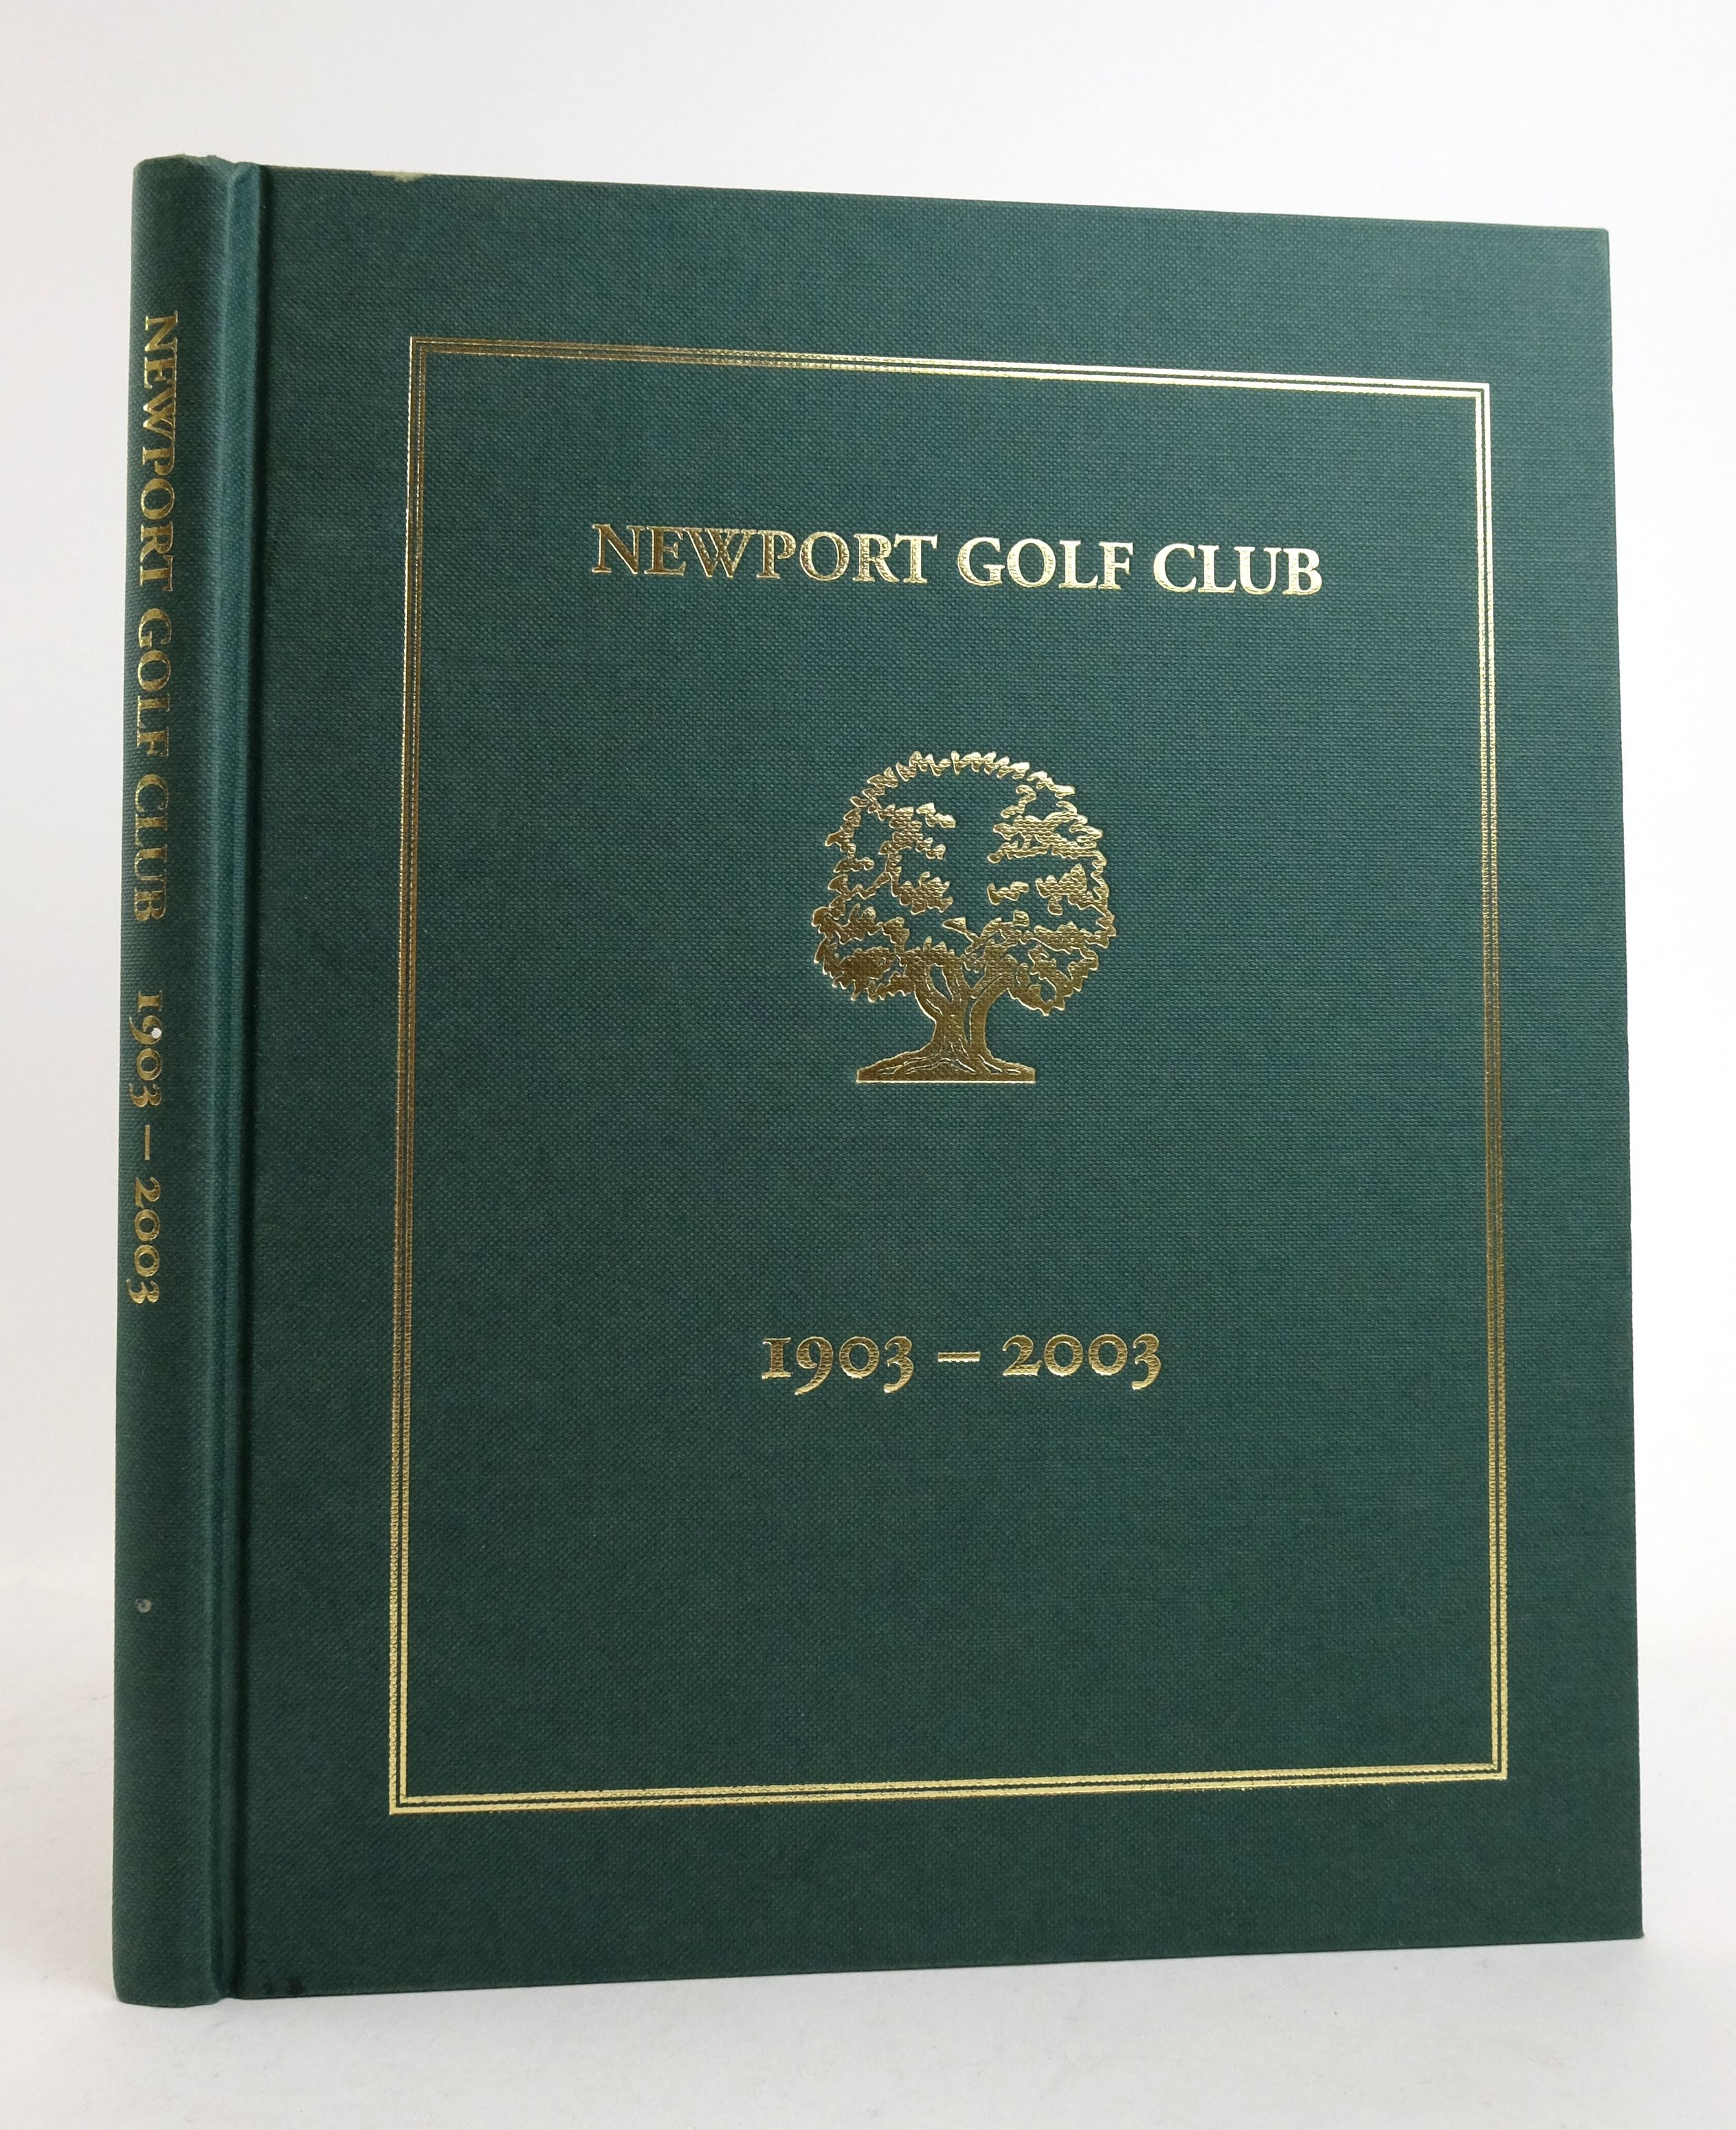 Photo of NEWPORT GOLF CLUB 1903-2003 written by Isaac, Alun published by Newport Golf Club (STOCK CODE: 1822466)  for sale by Stella & Rose's Books